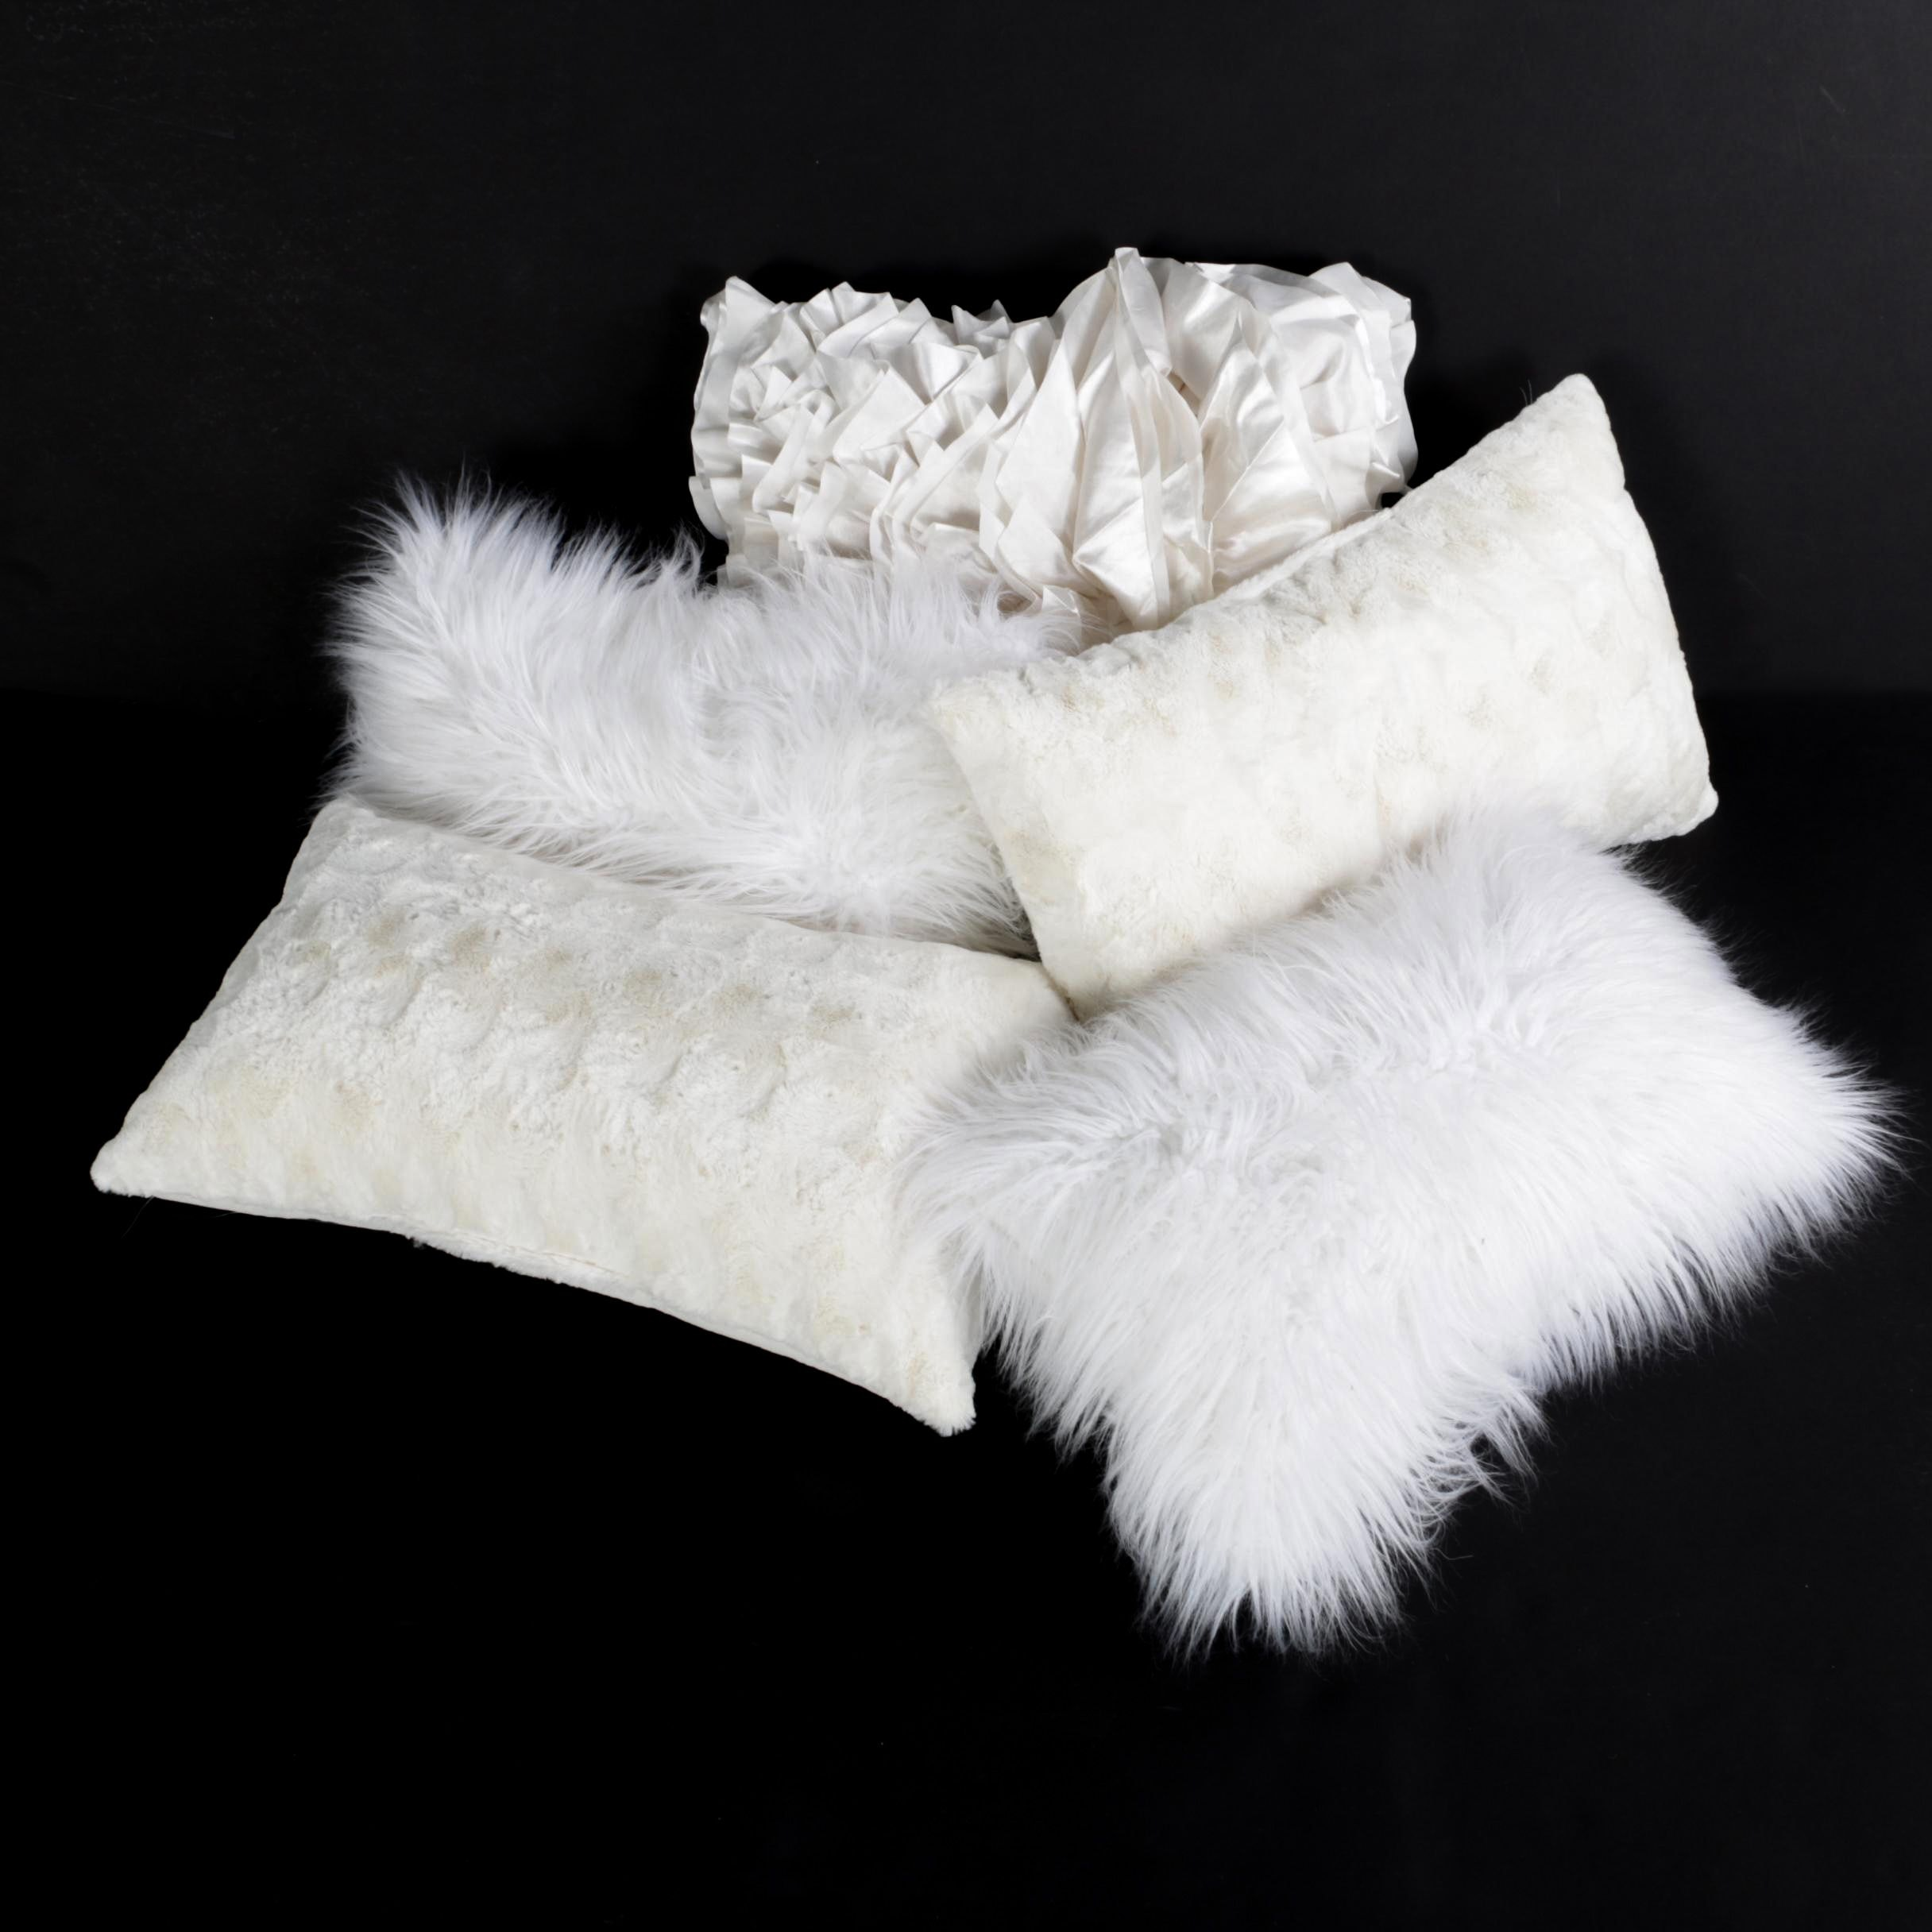 Variety of Decorative Throw Pillows including Pier 1